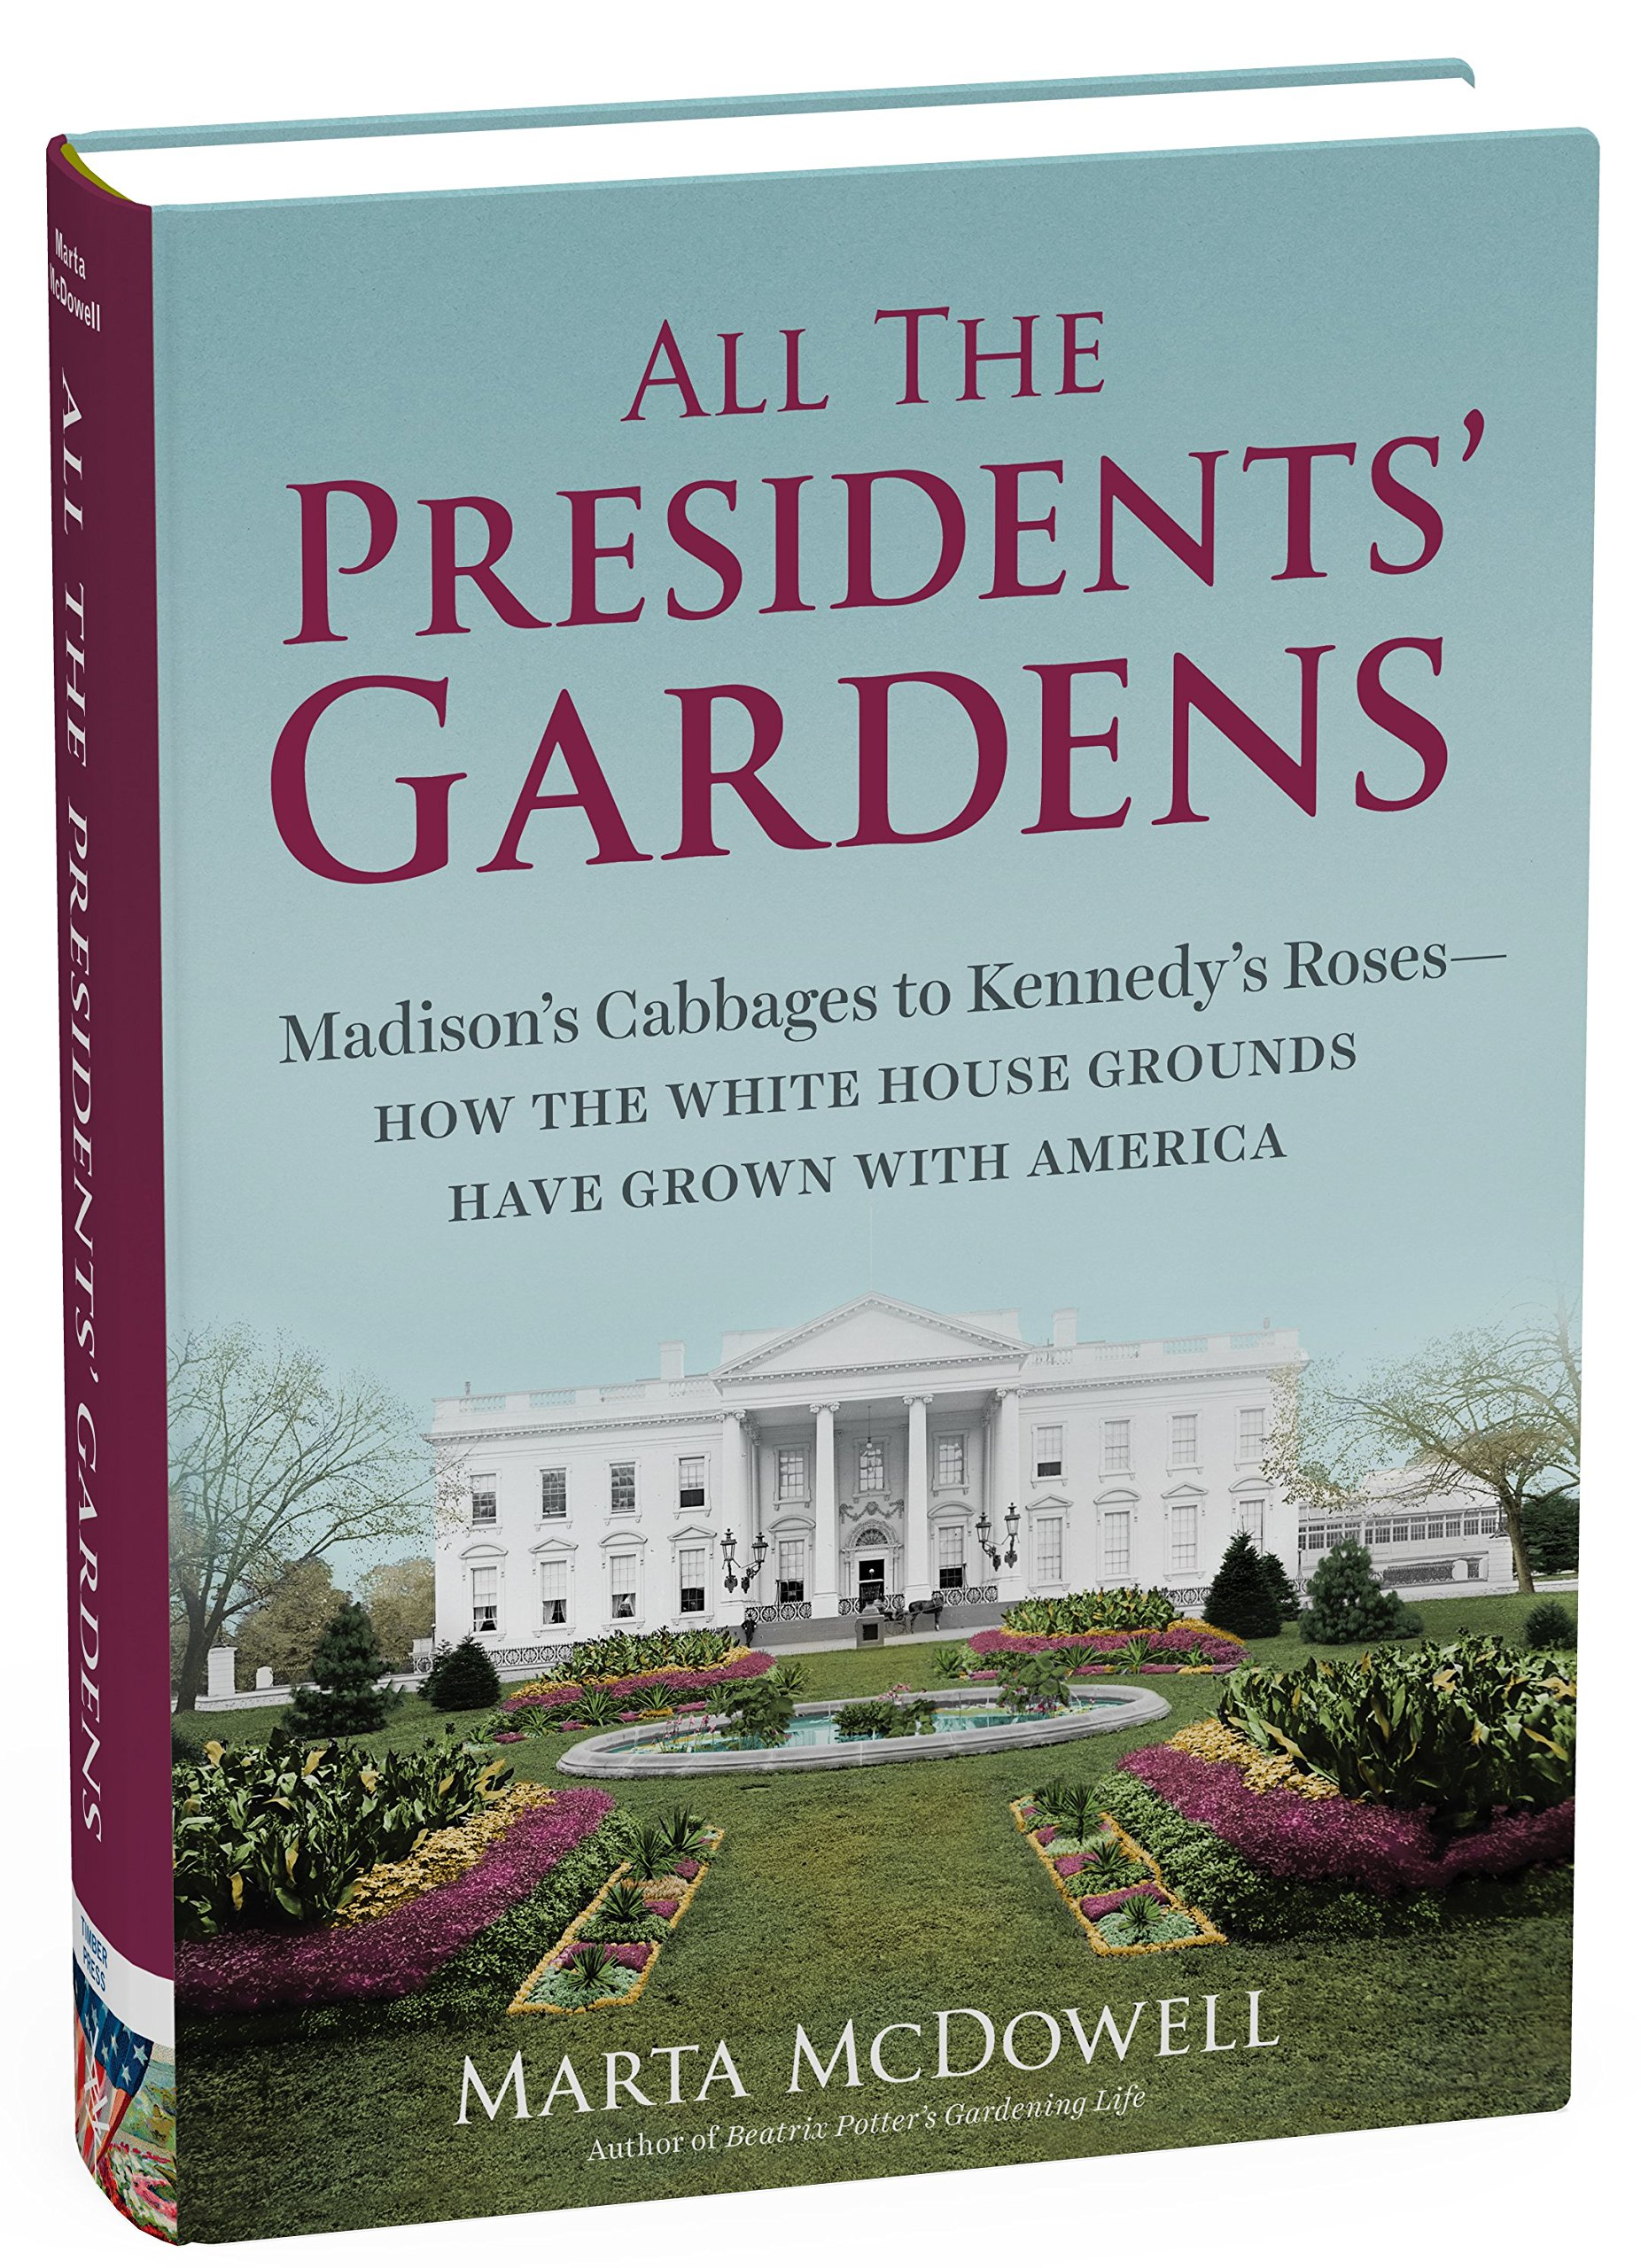 Read Online All the Presidents' Gardens: Madison's Cabbages to Kennedy's Roses―How the White House Grounds Have Grown with America PDF ePub fb2 ebook